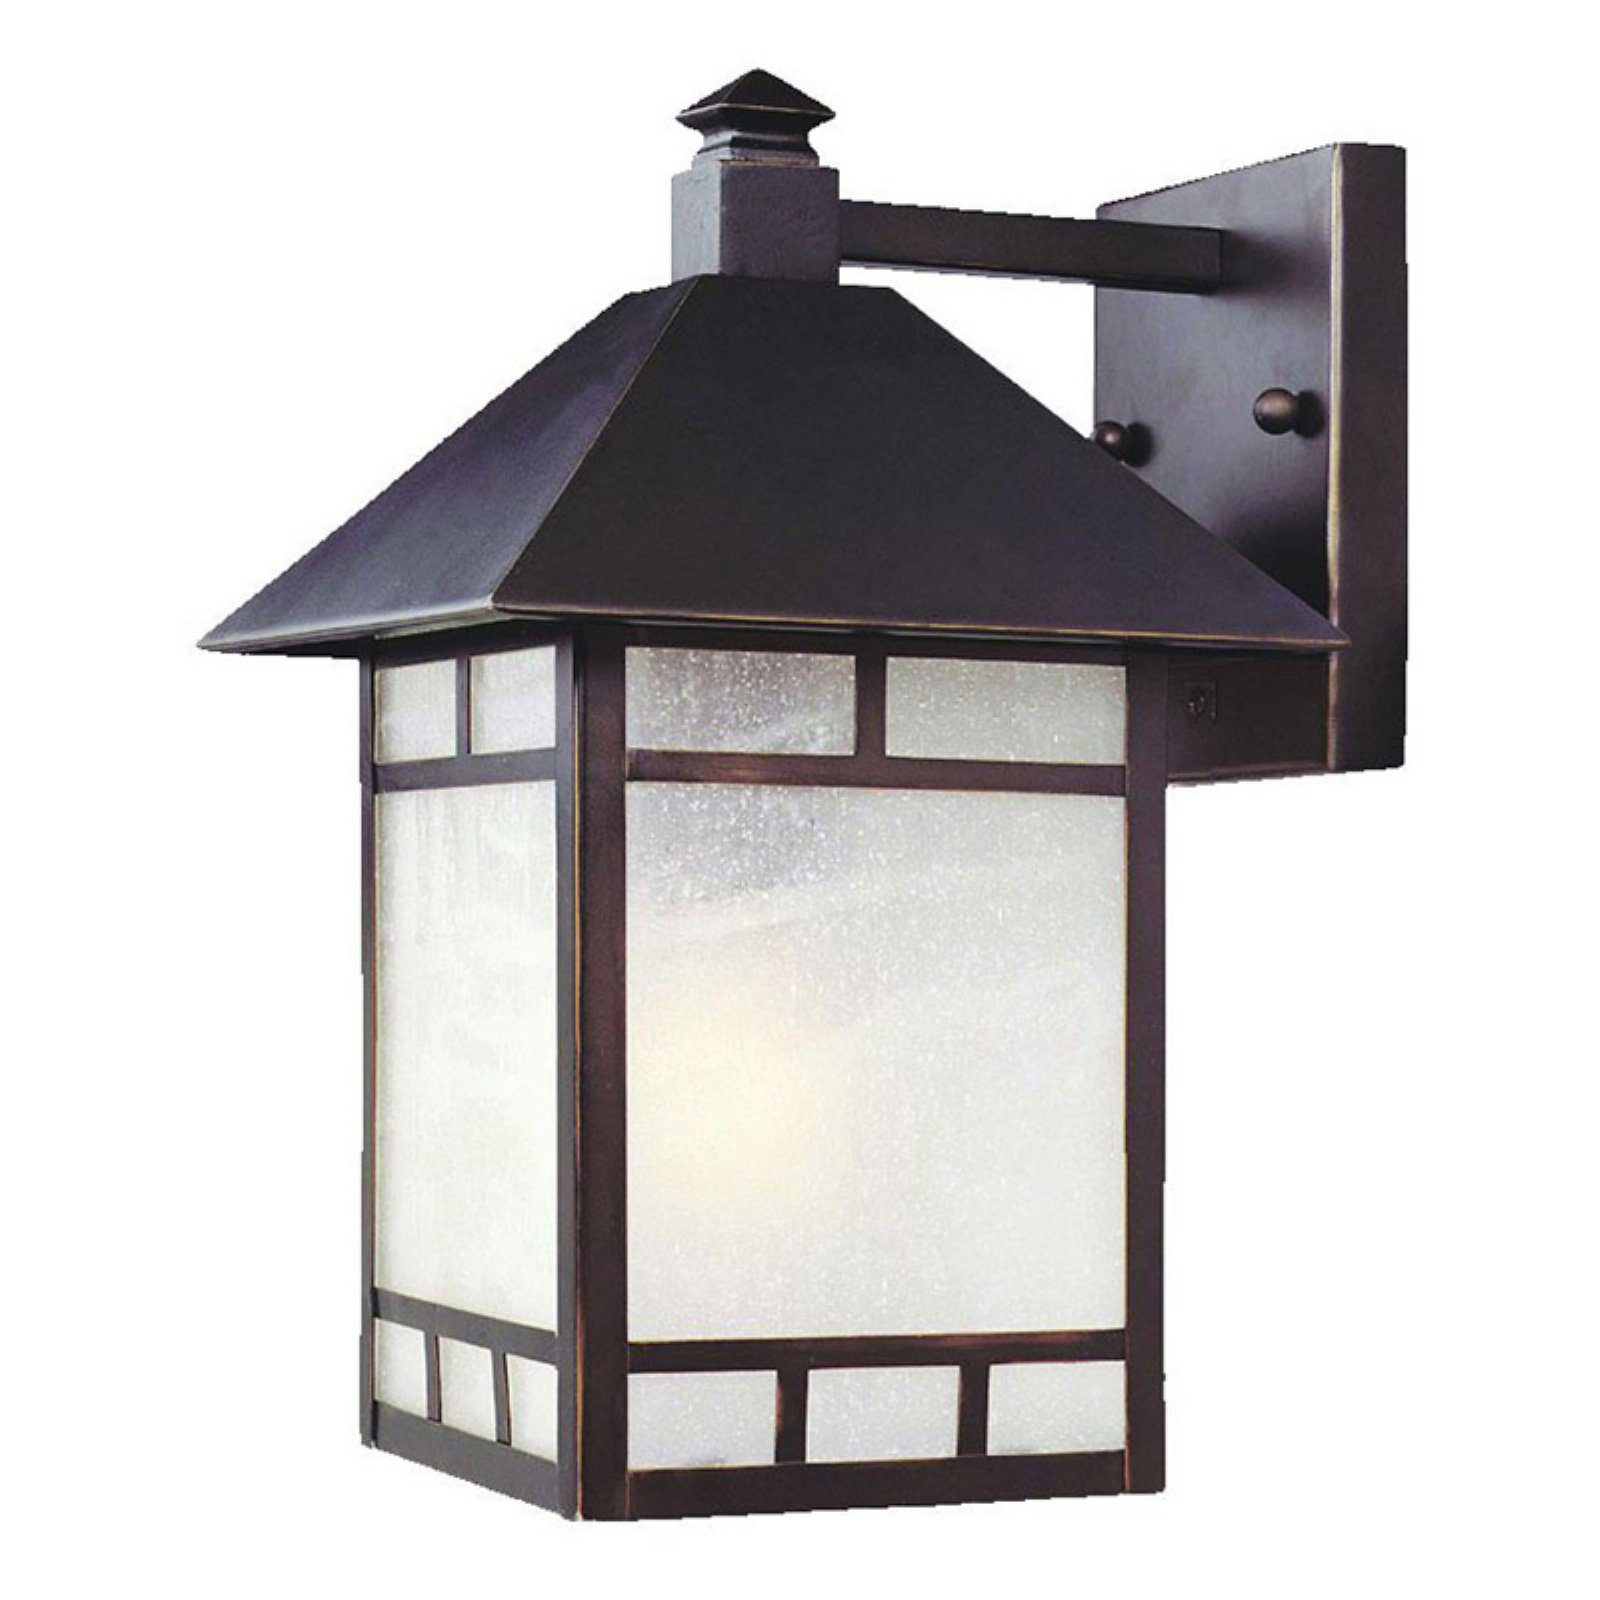 Acclaim Lighting Artisan 8.5 in. Outdoor Wall Mount Light Fixture